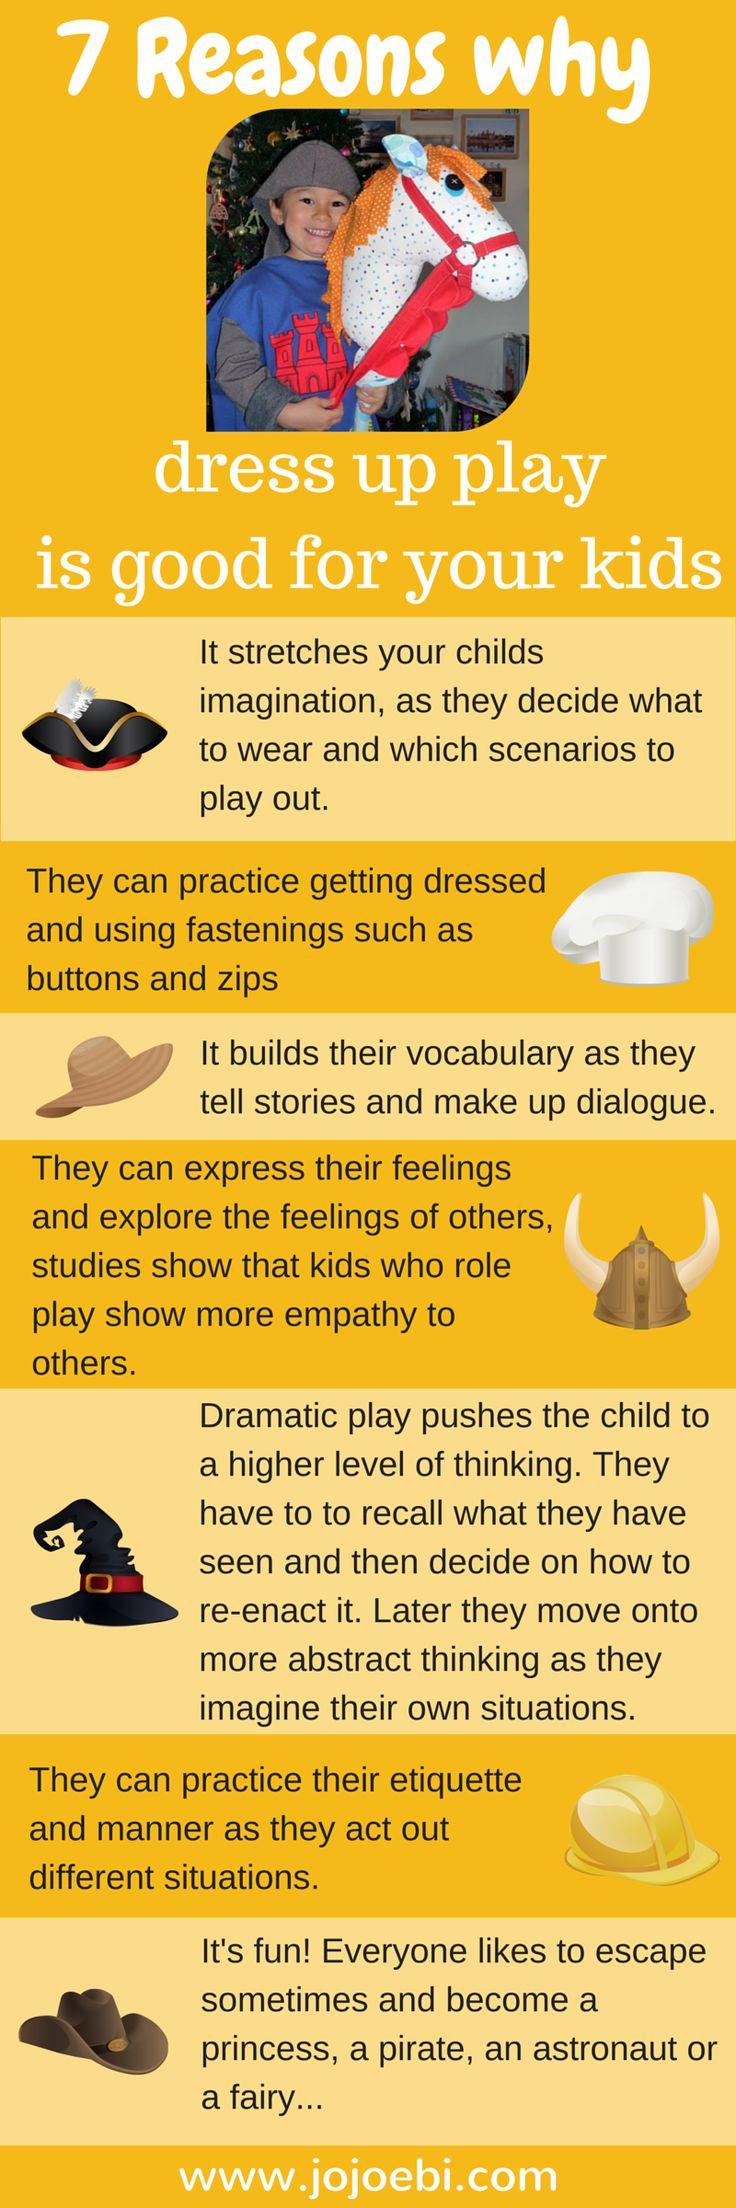 7 reasons dress up play is good for your kids